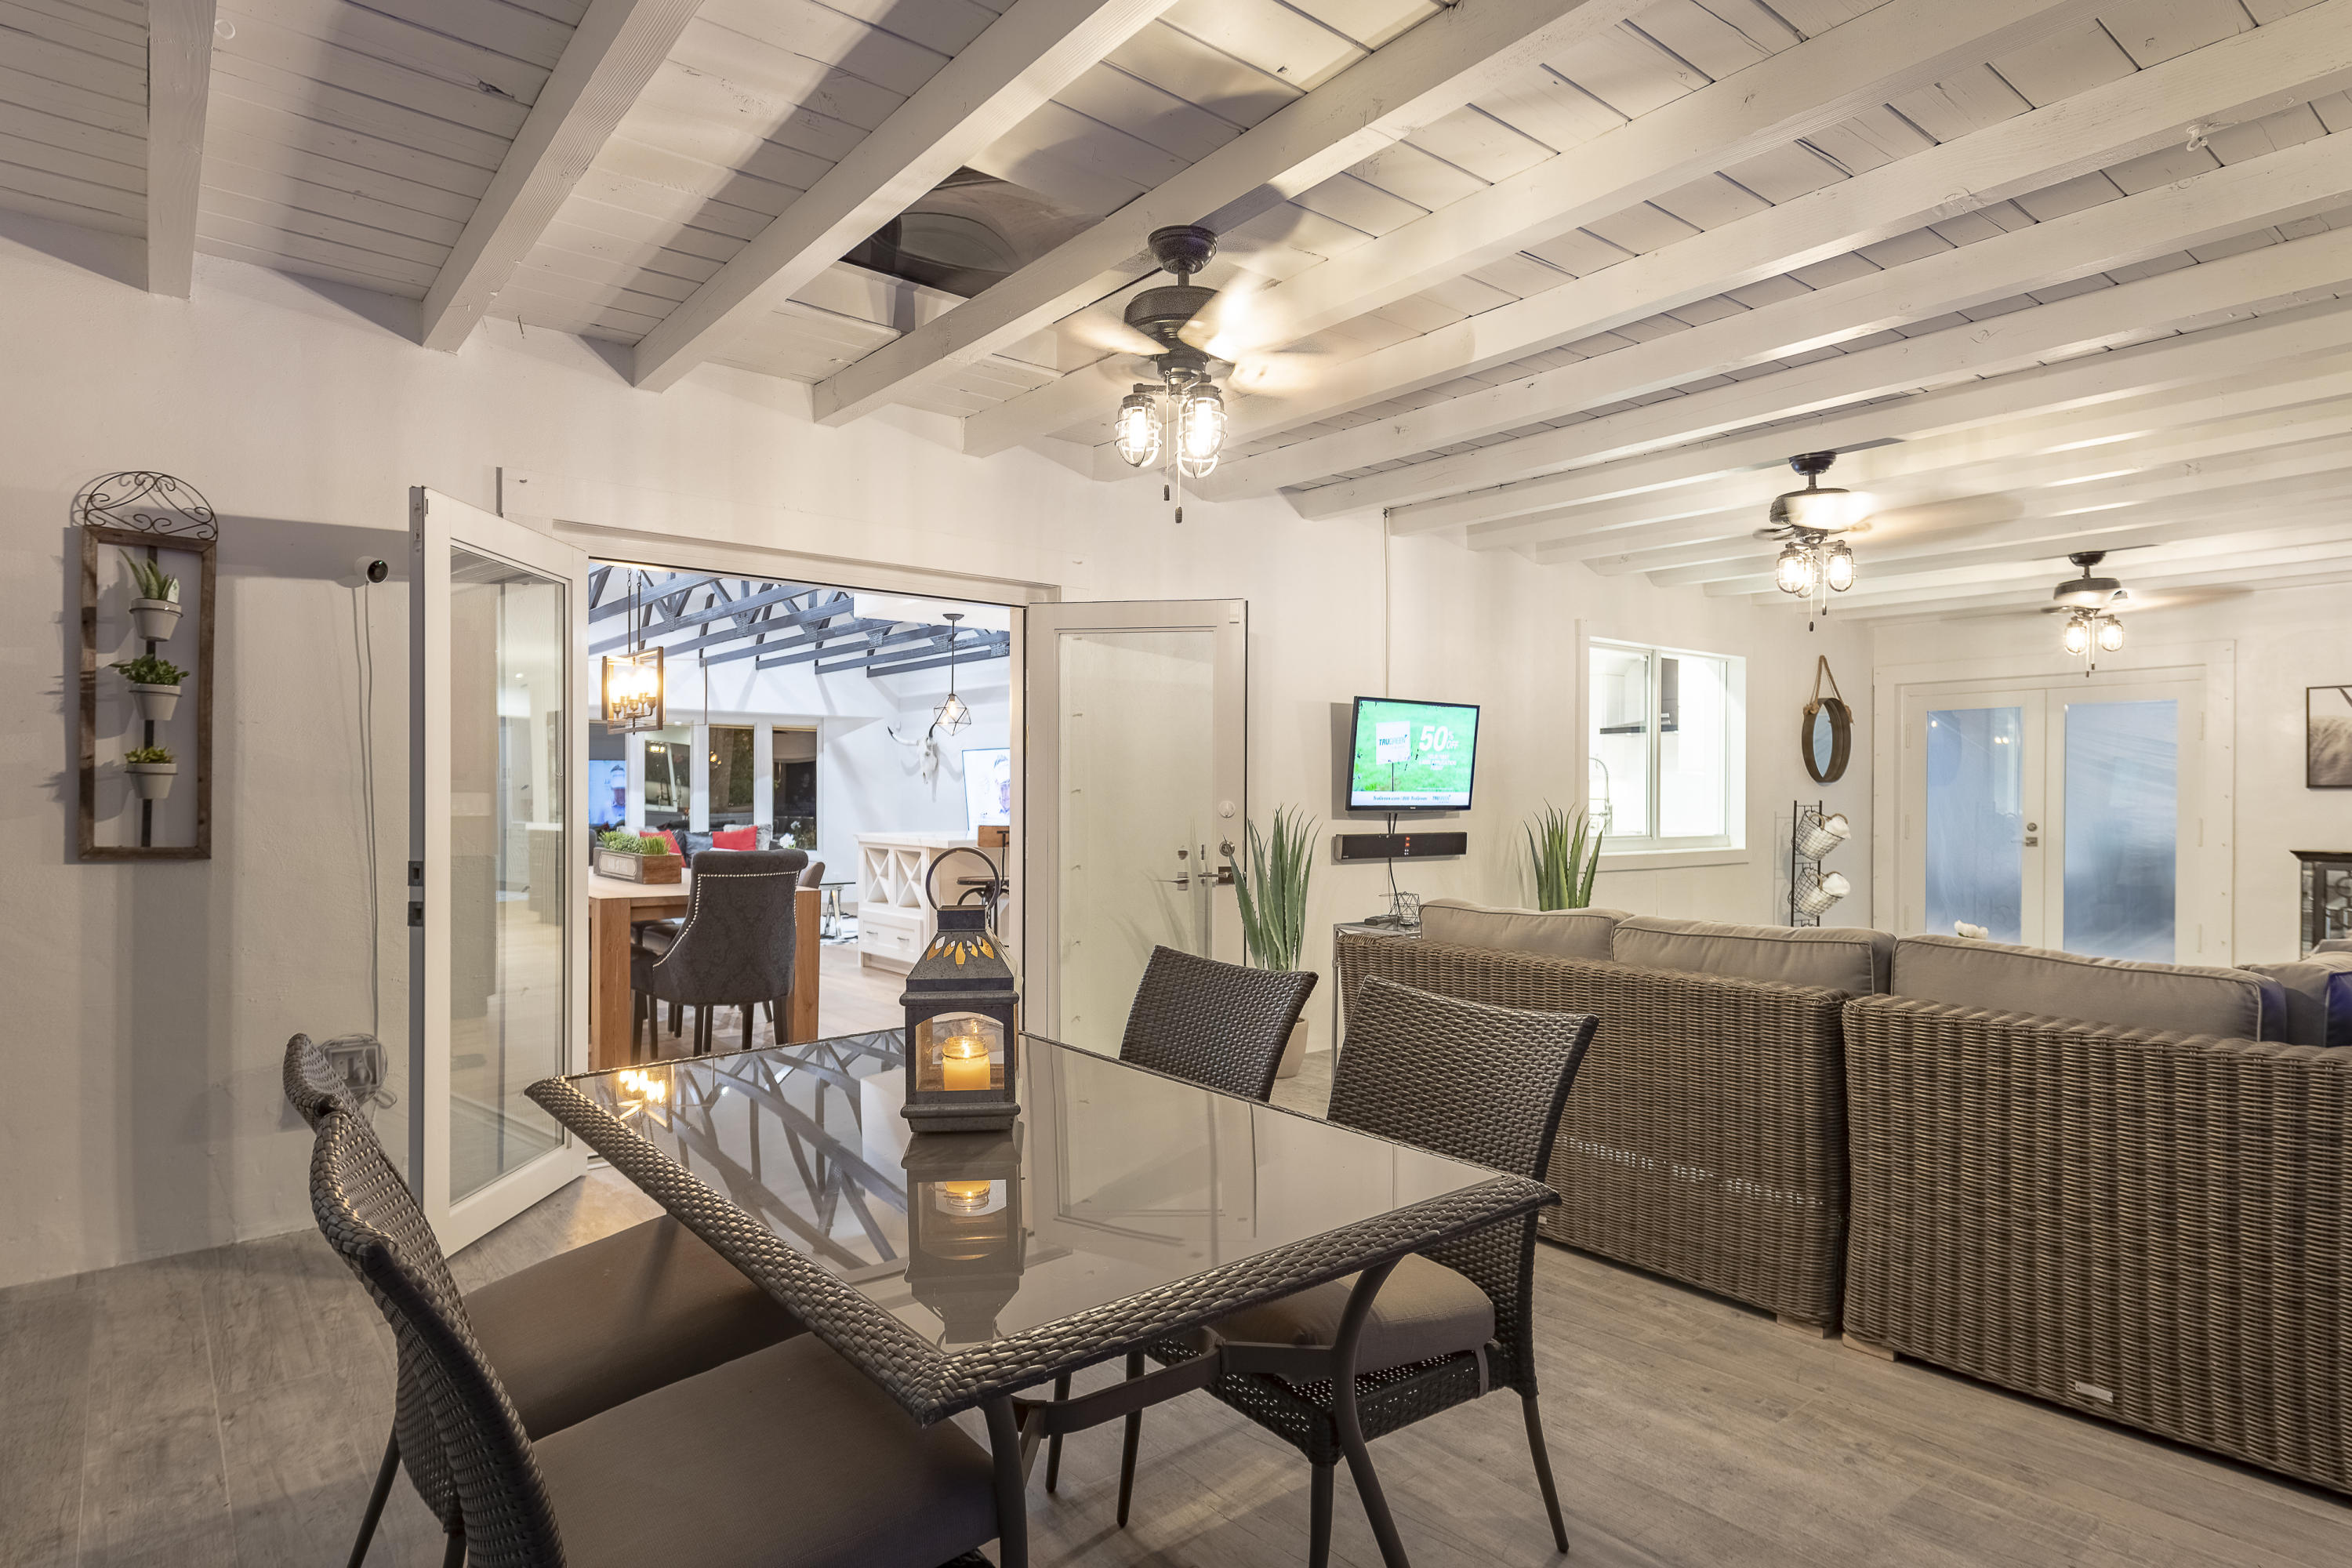 BBB RANCHES HOMES FOR SALE